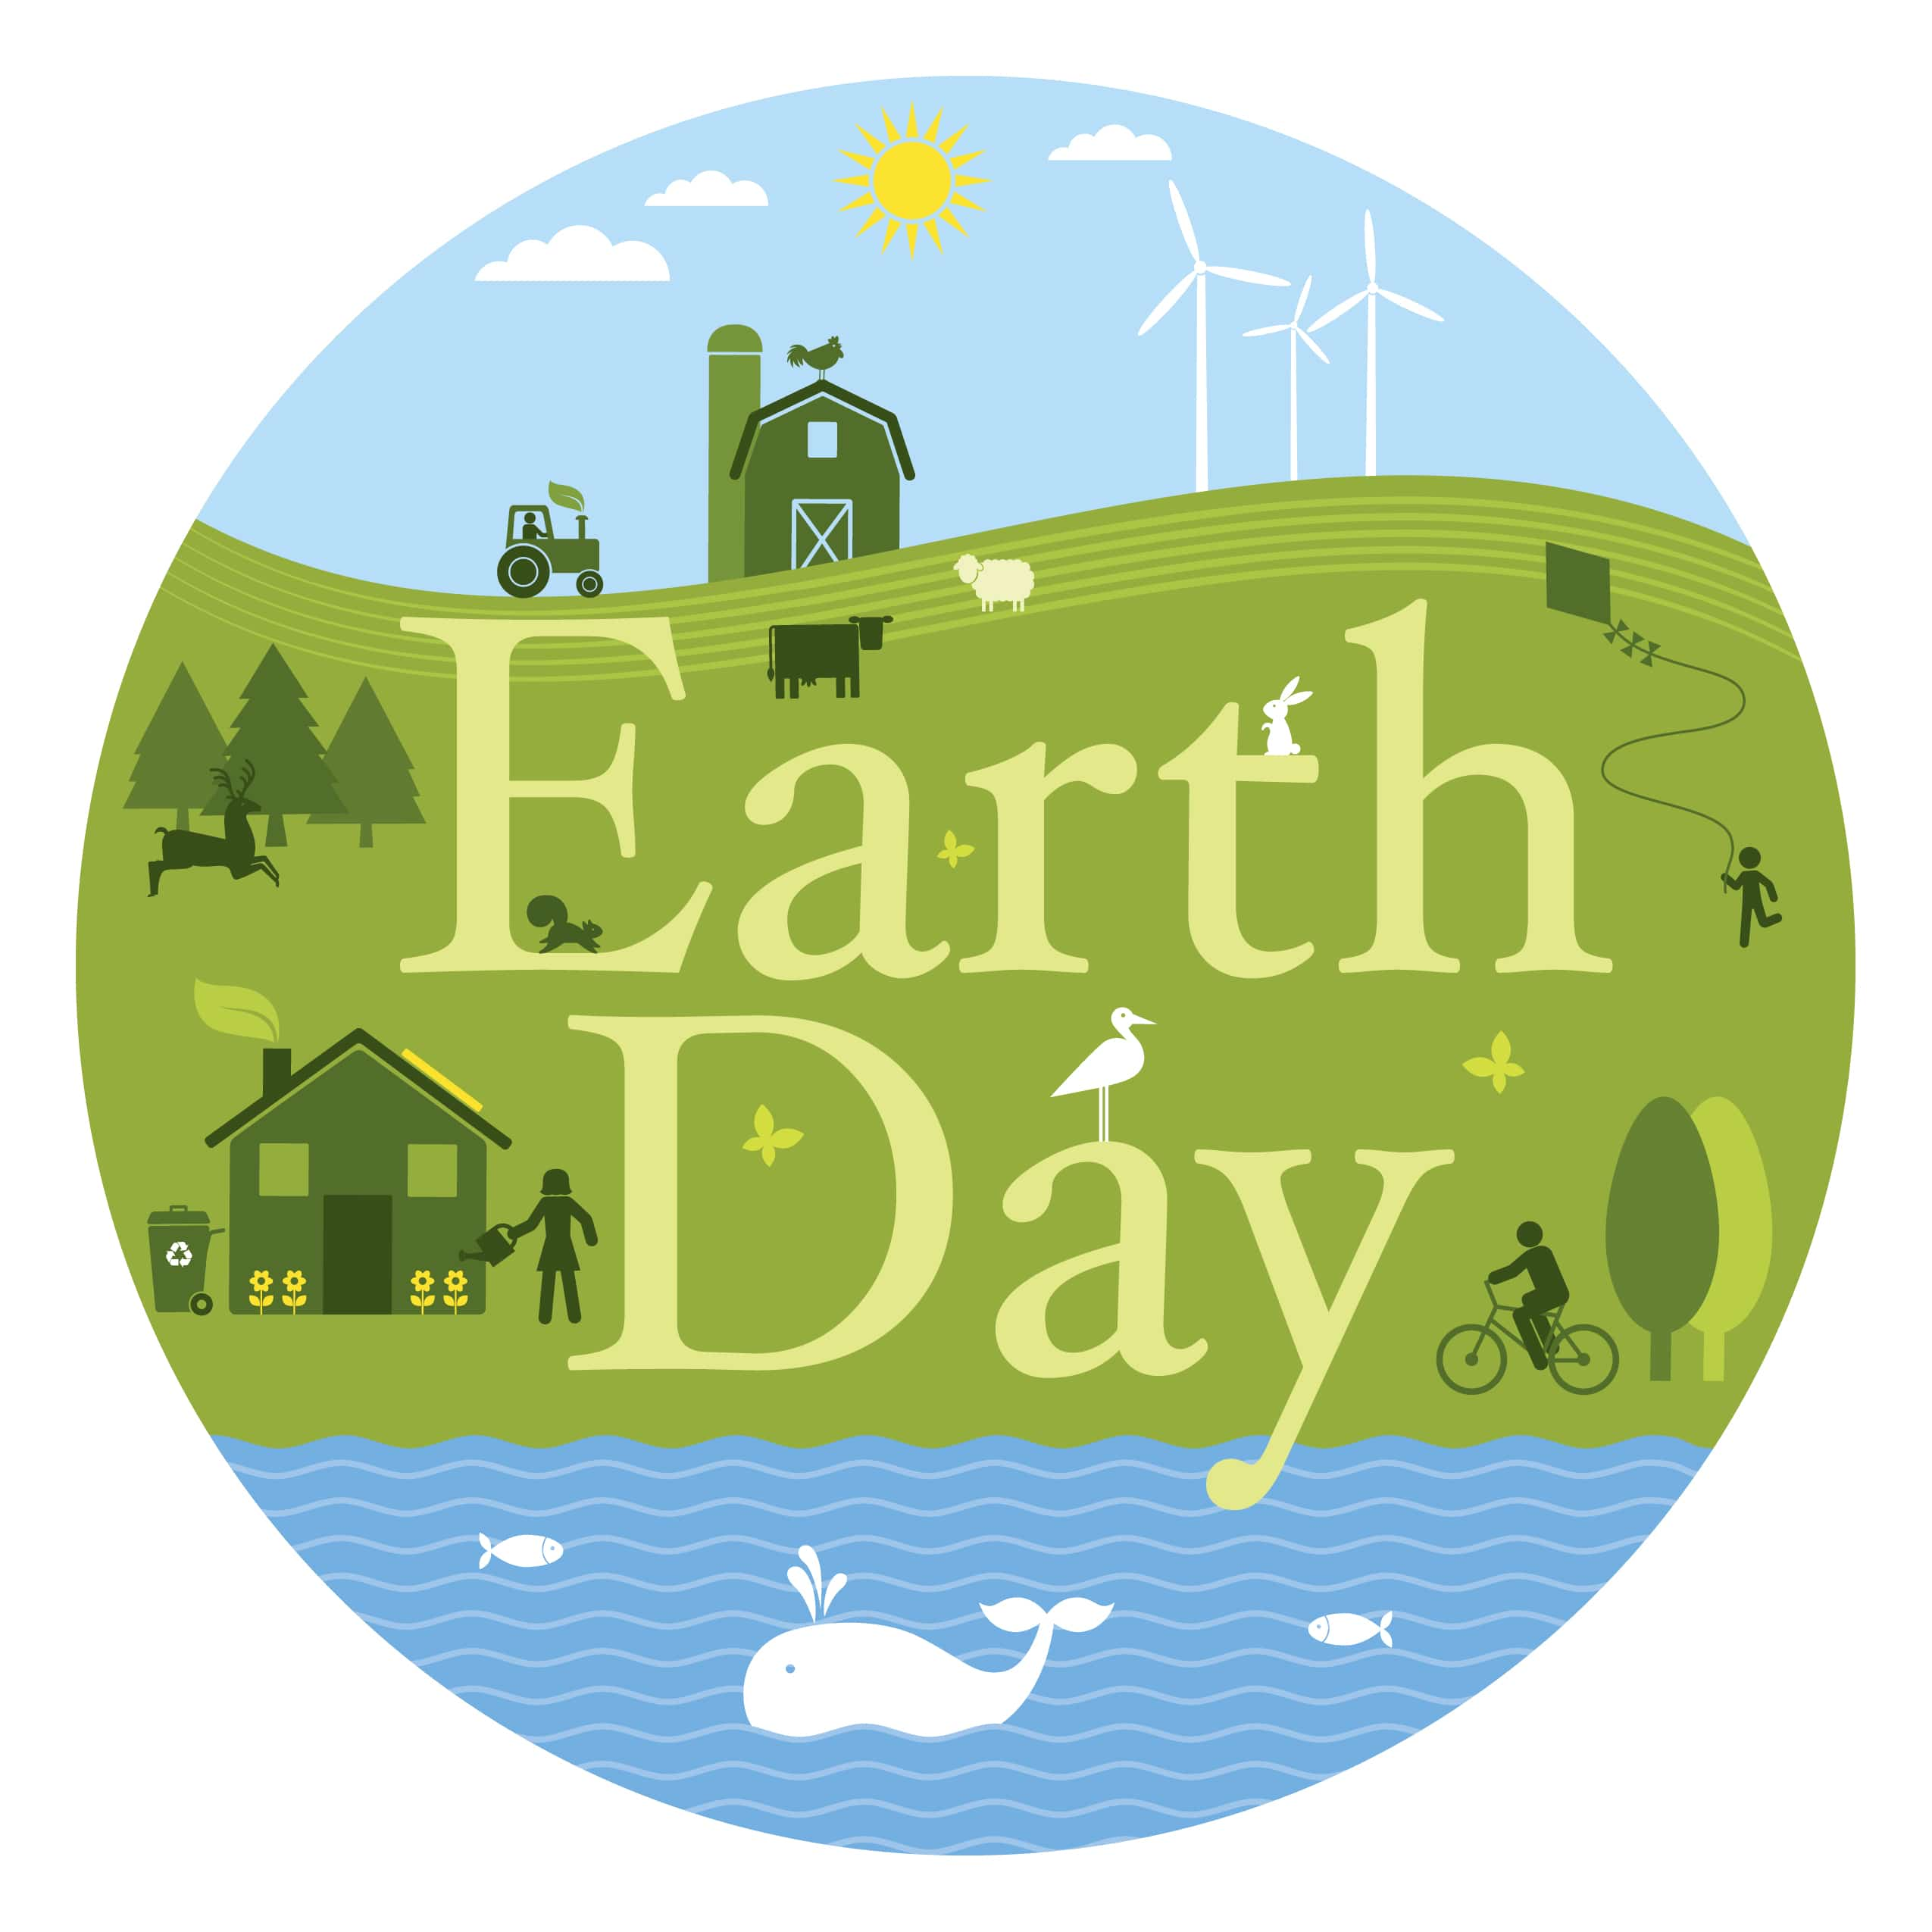 HD Images of Earth Day